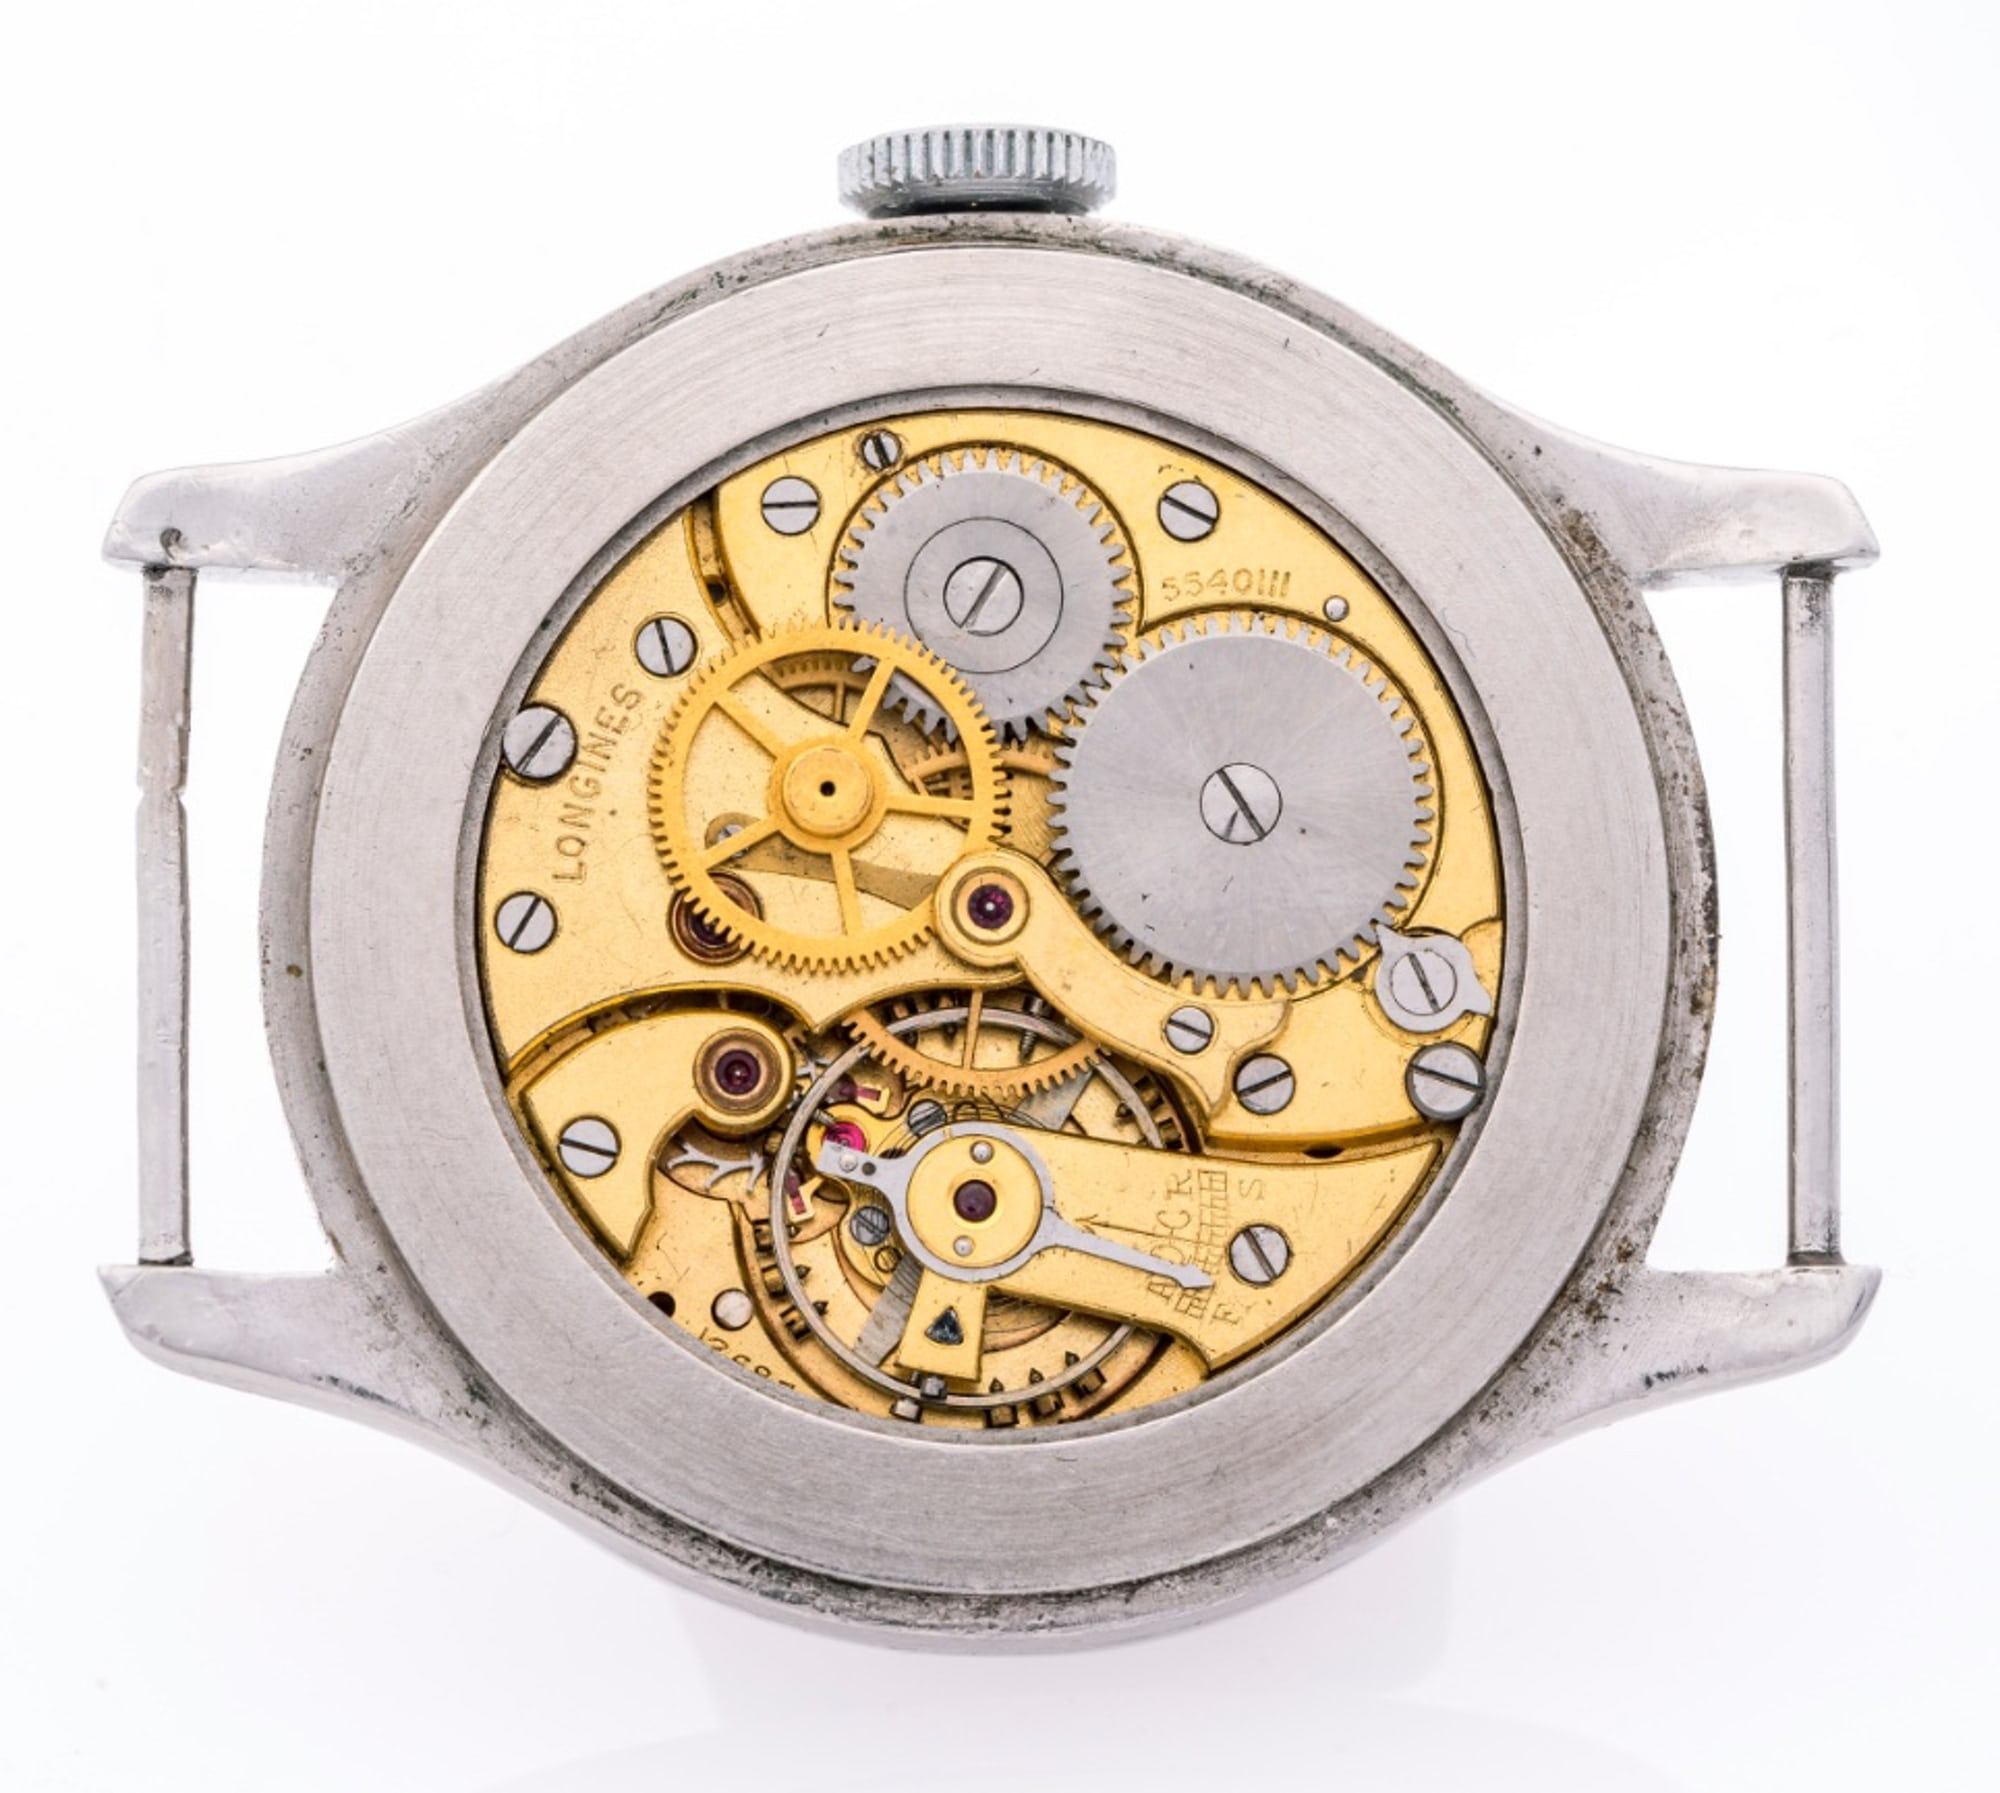 Longines 12.68Z movement